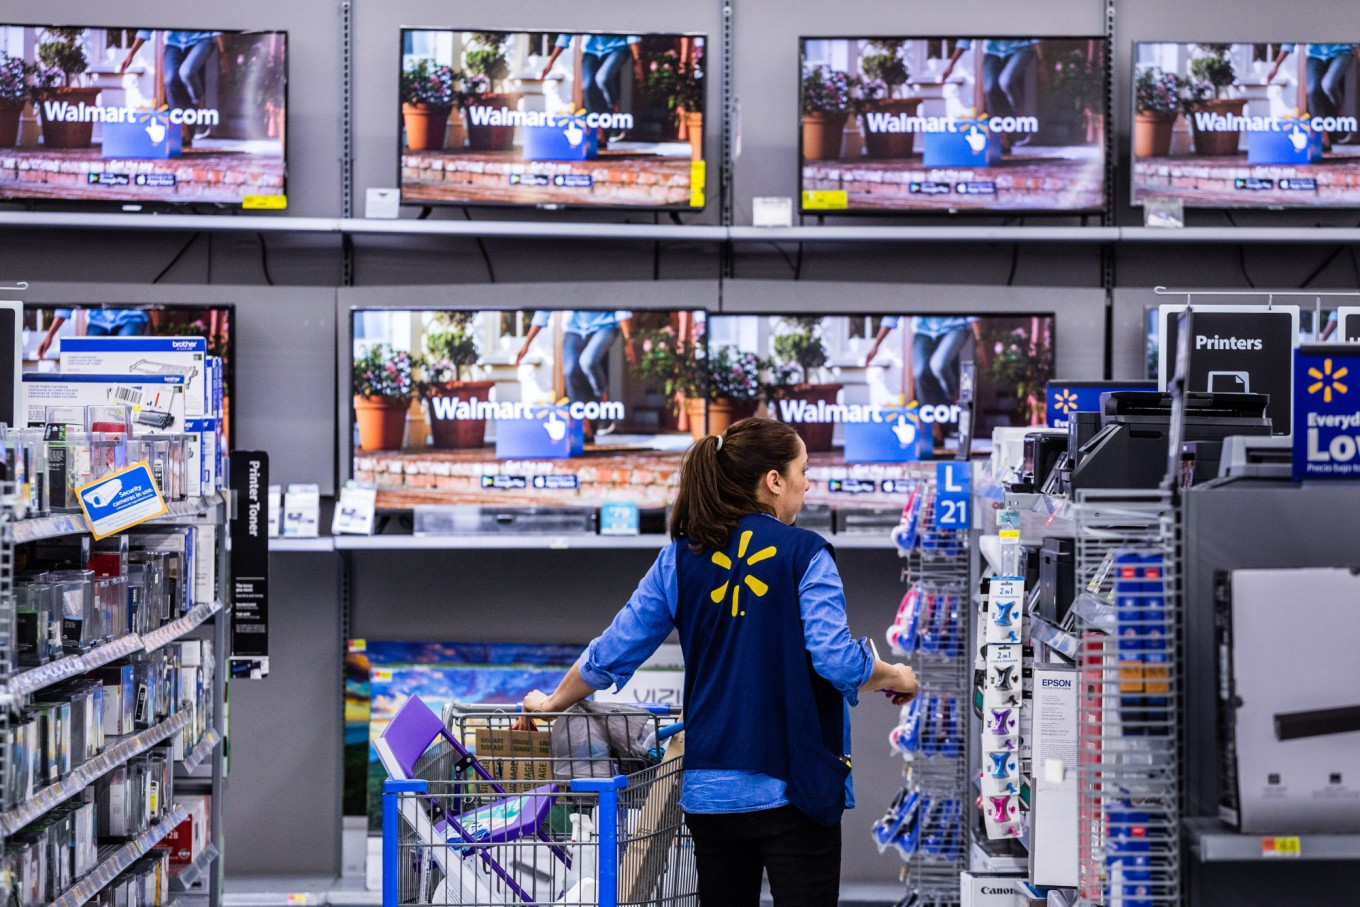 Walmart tries TV content creation with MGM partnership